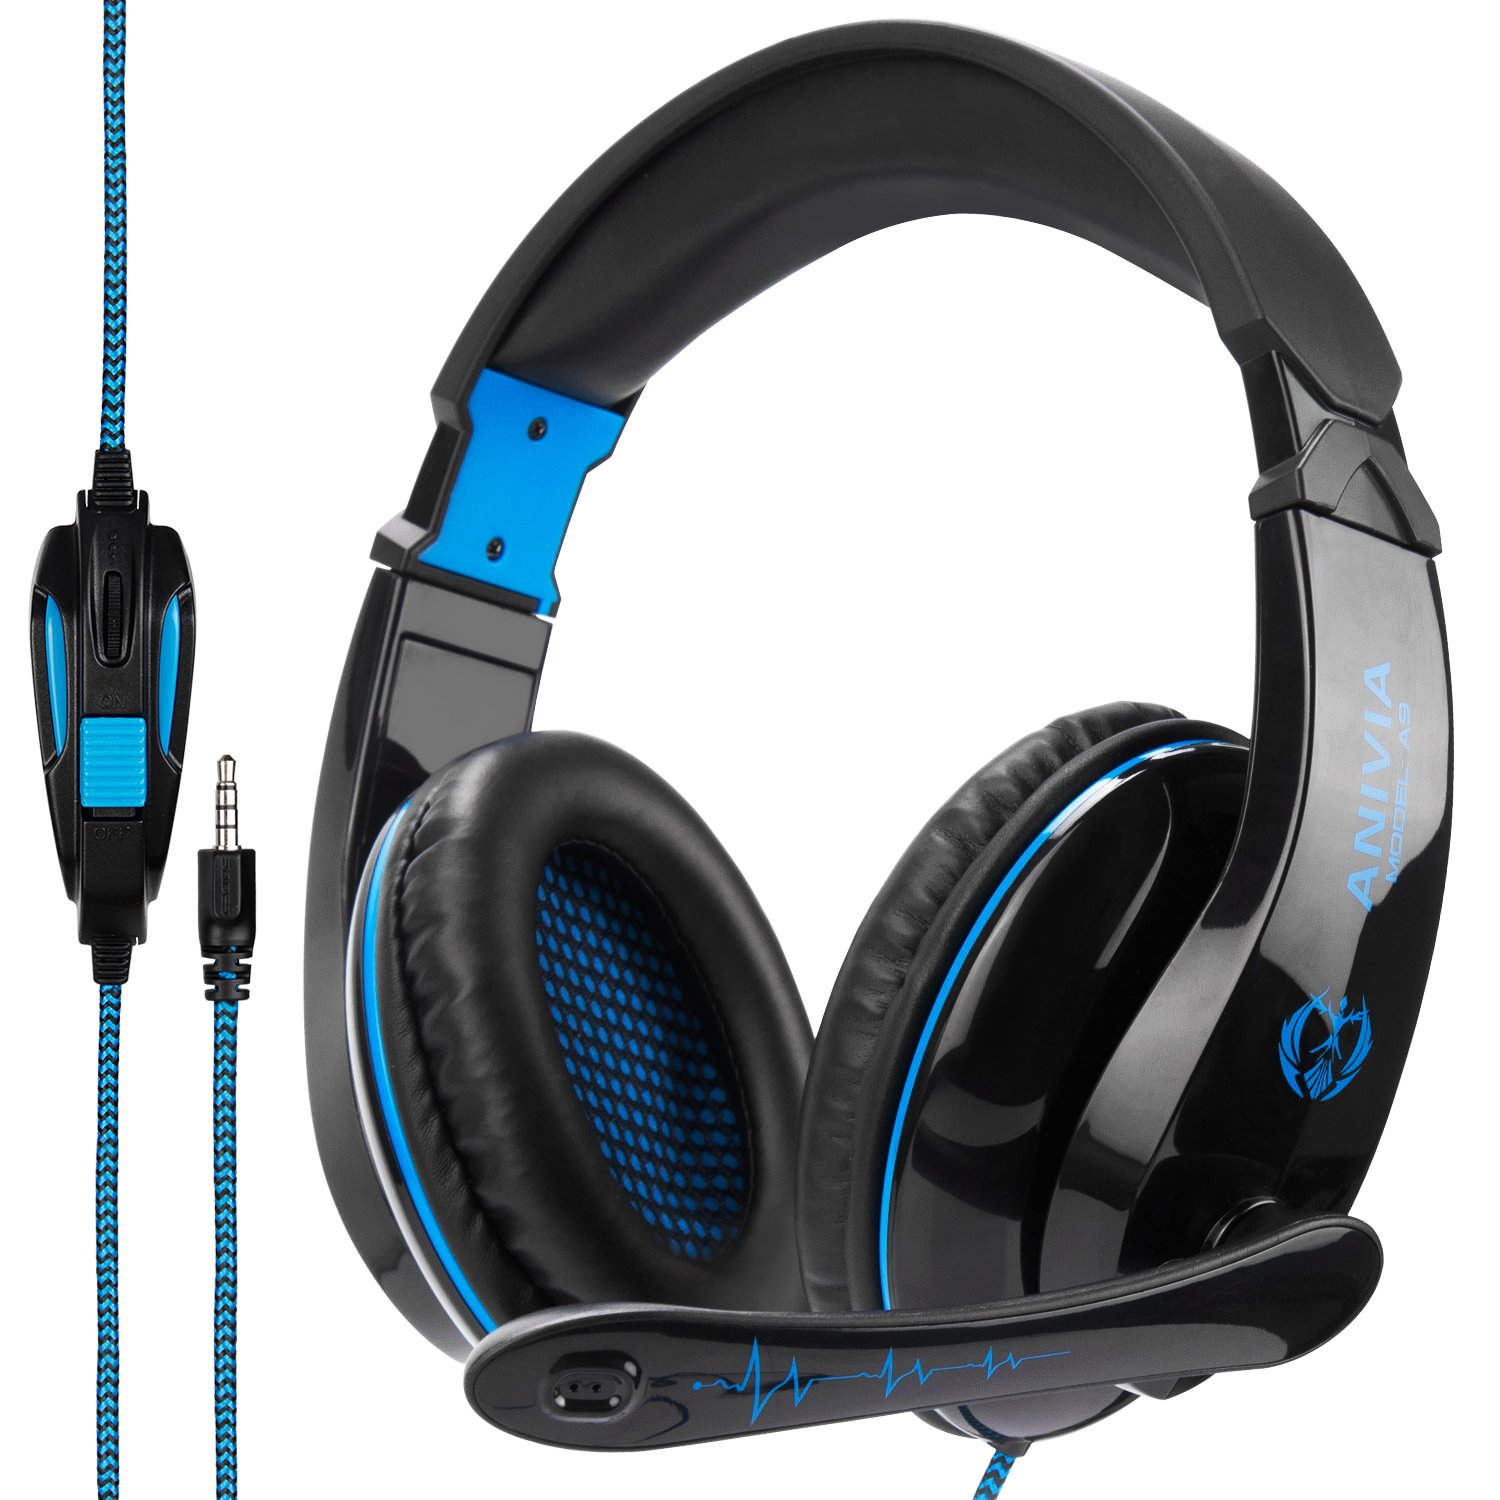 Anivia A9 PS4 Gaming Headset Headphone Over Ear Setero Gaming Headset with Microphone,Noise Canceling 3.5mm Jack for PS4 New Xbox One/Mac /PC/Computer,(Black Blue) by SADES